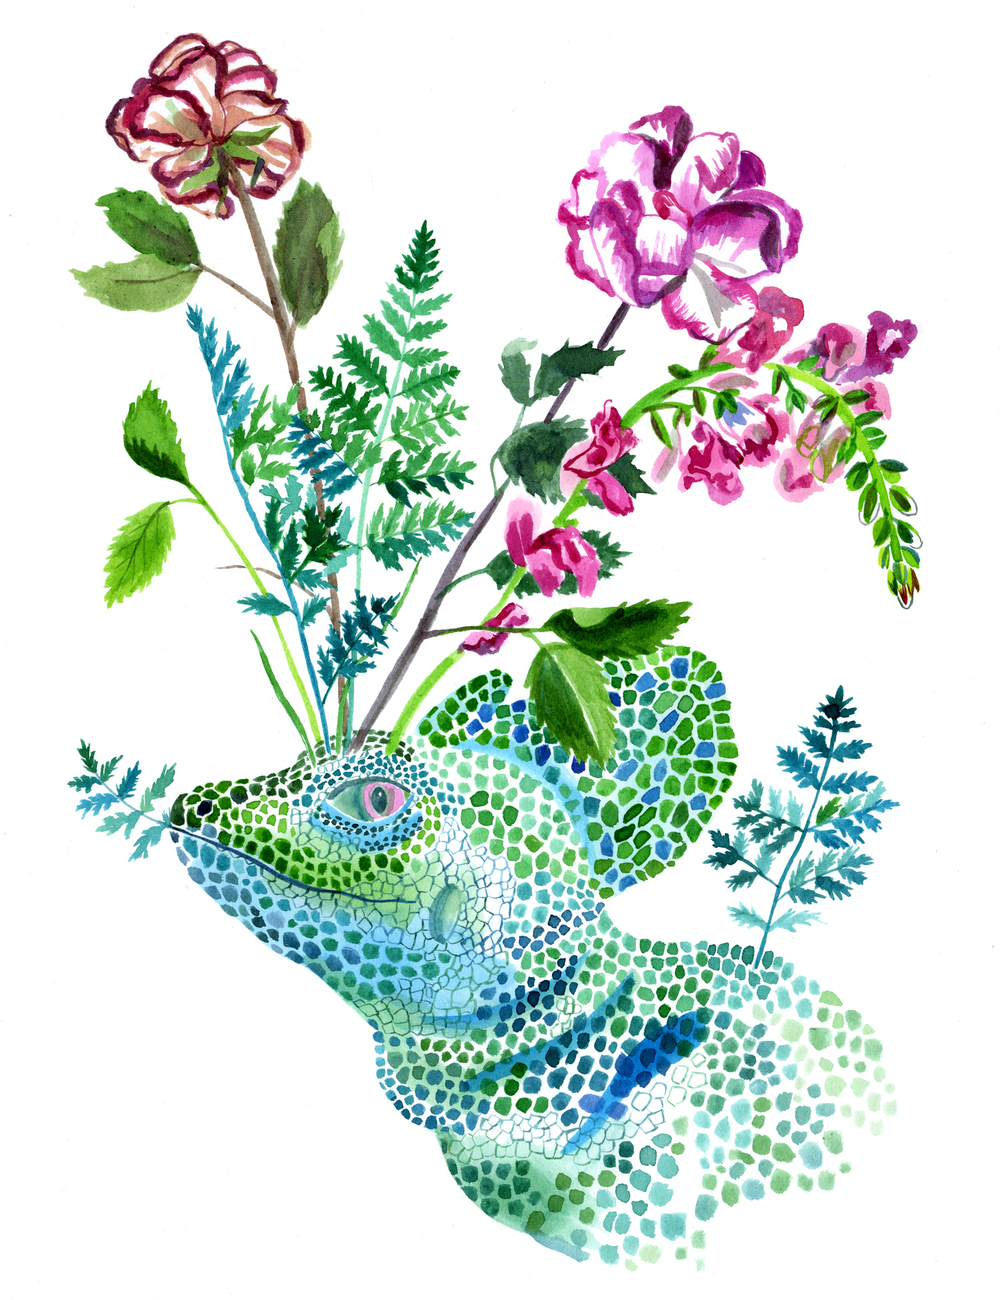 Basilisk Lizard and Flowers